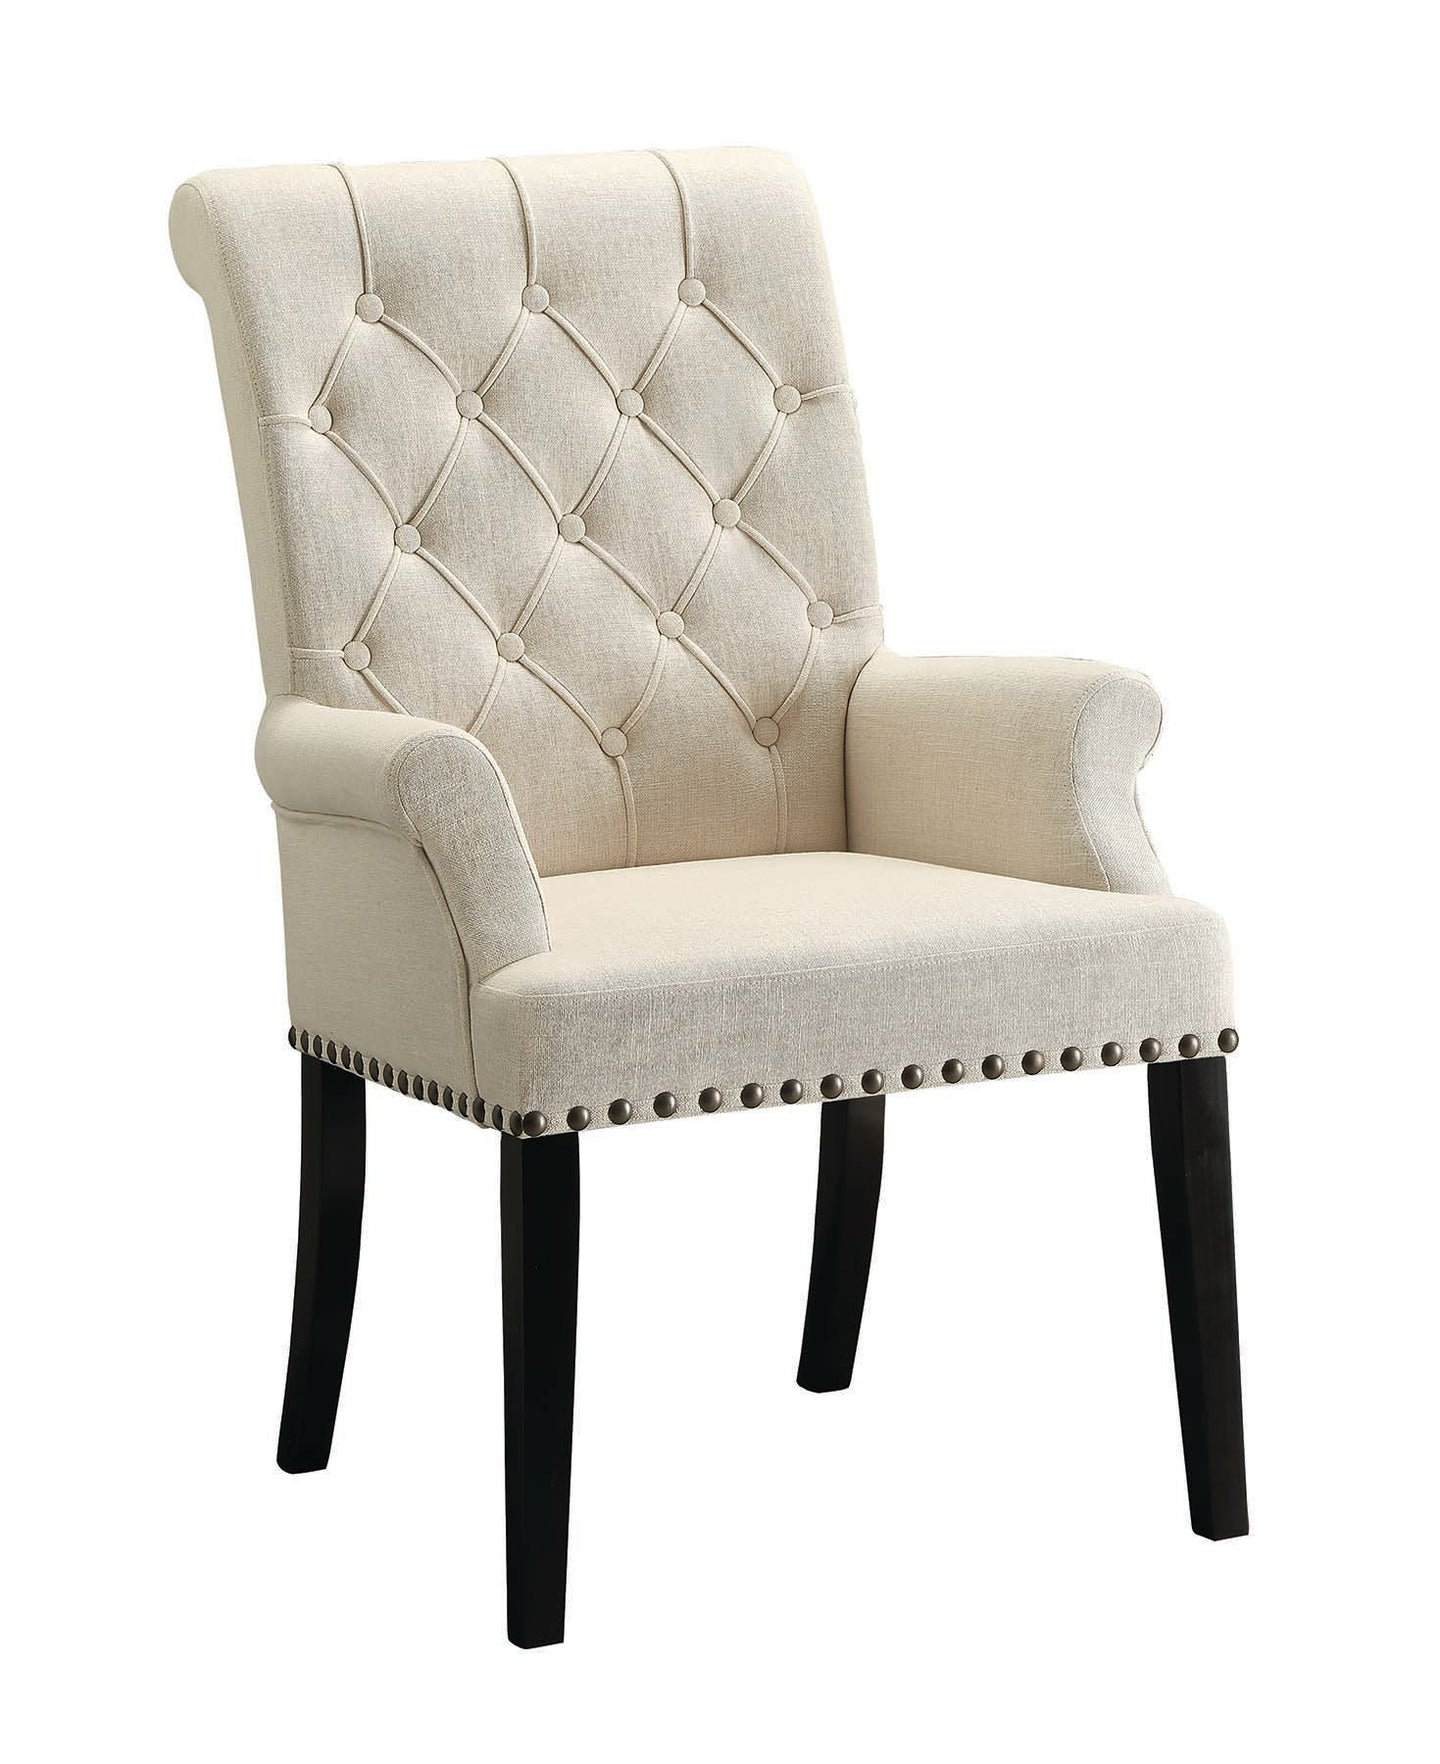 Homy Living Parkins Cream Fabric And Wood Finish Dining Arm Chair